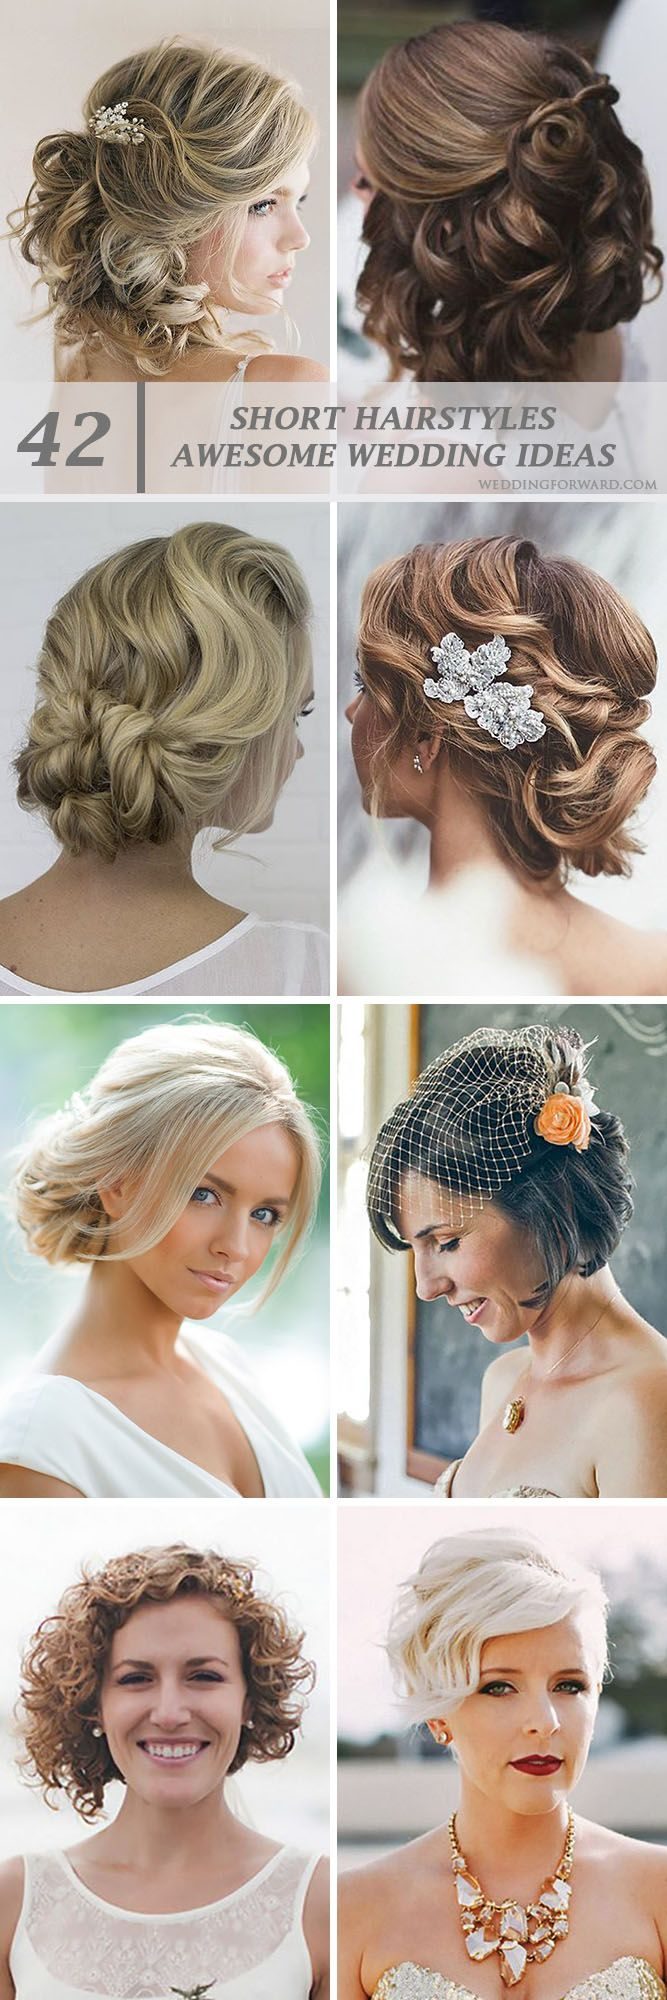 42 Short Wedding Hairstyle Ideas So Good You'd Want To Cut Your Hair ❤ If your short hairstyle is part of your individual style, then make it to highlight your image on the wedding day. See more: http://www.weddingforward.com/wedding-hairstyle-ideas-for-short-hair/ #wedding #hairstyle